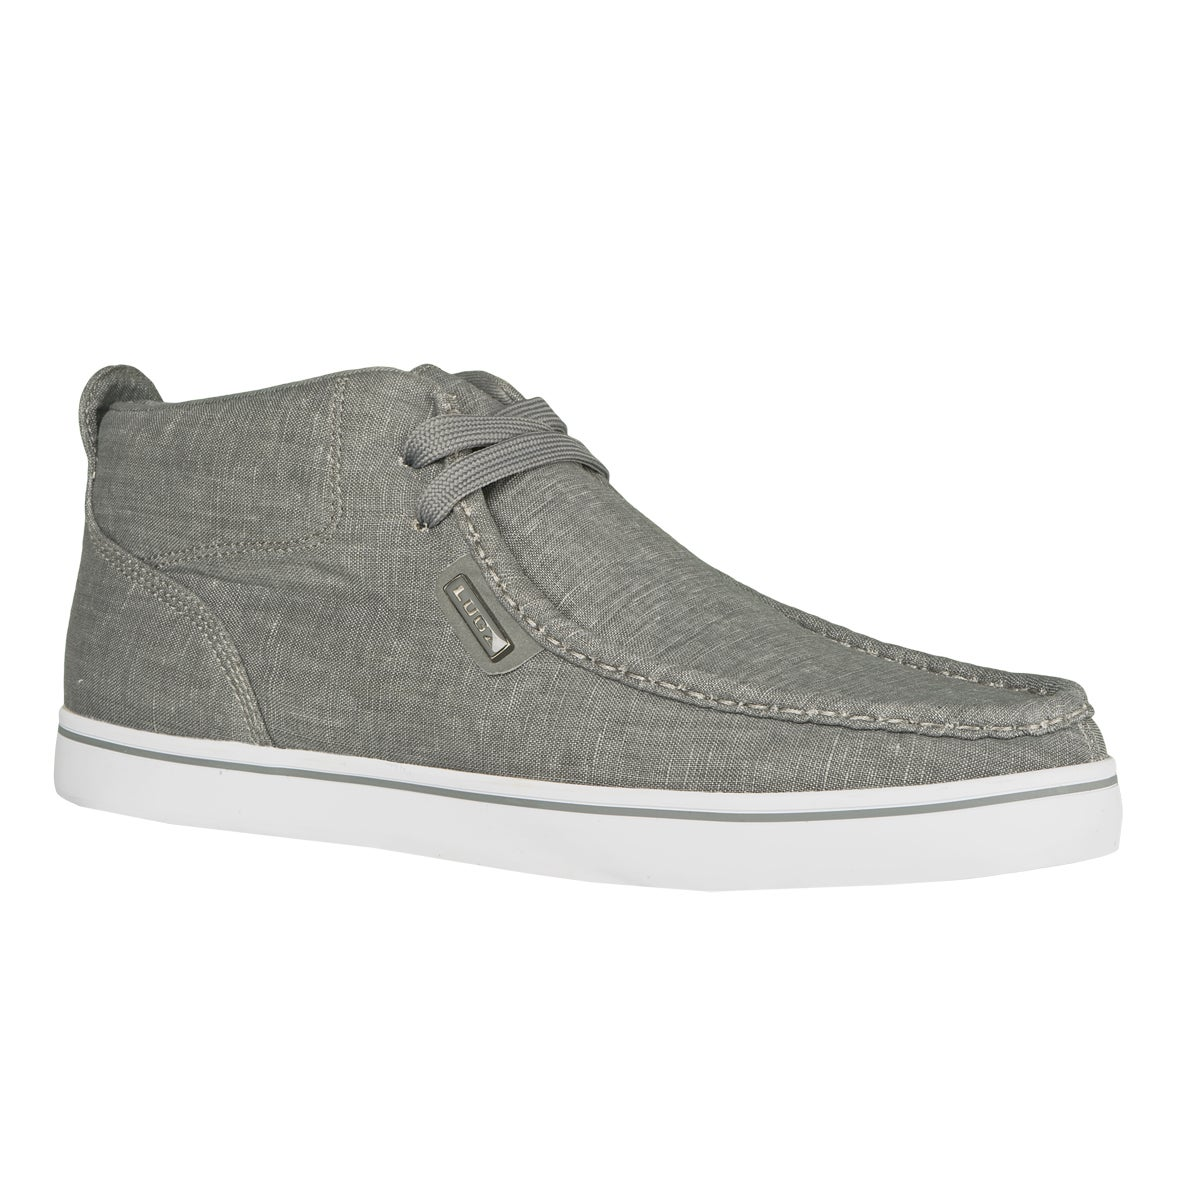 Lugz Men's Strider Chambray Shoe